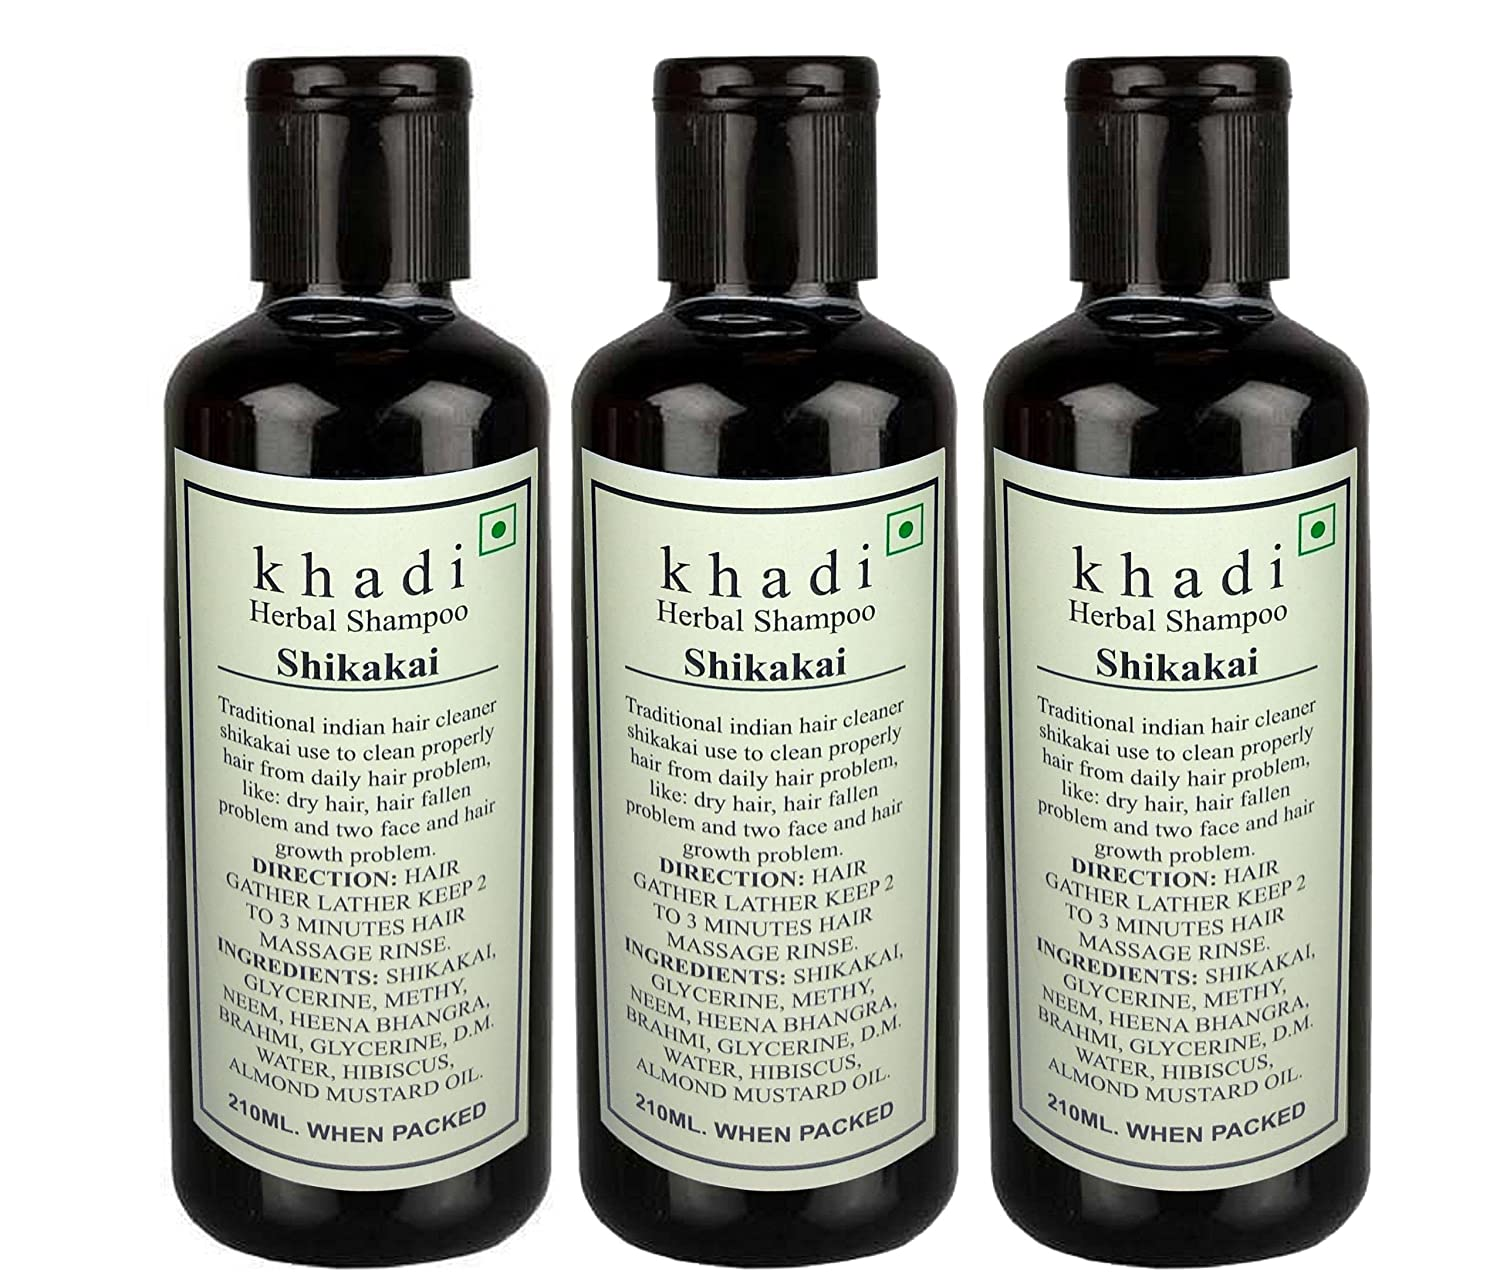 Khadi herbal shikakai shampoo